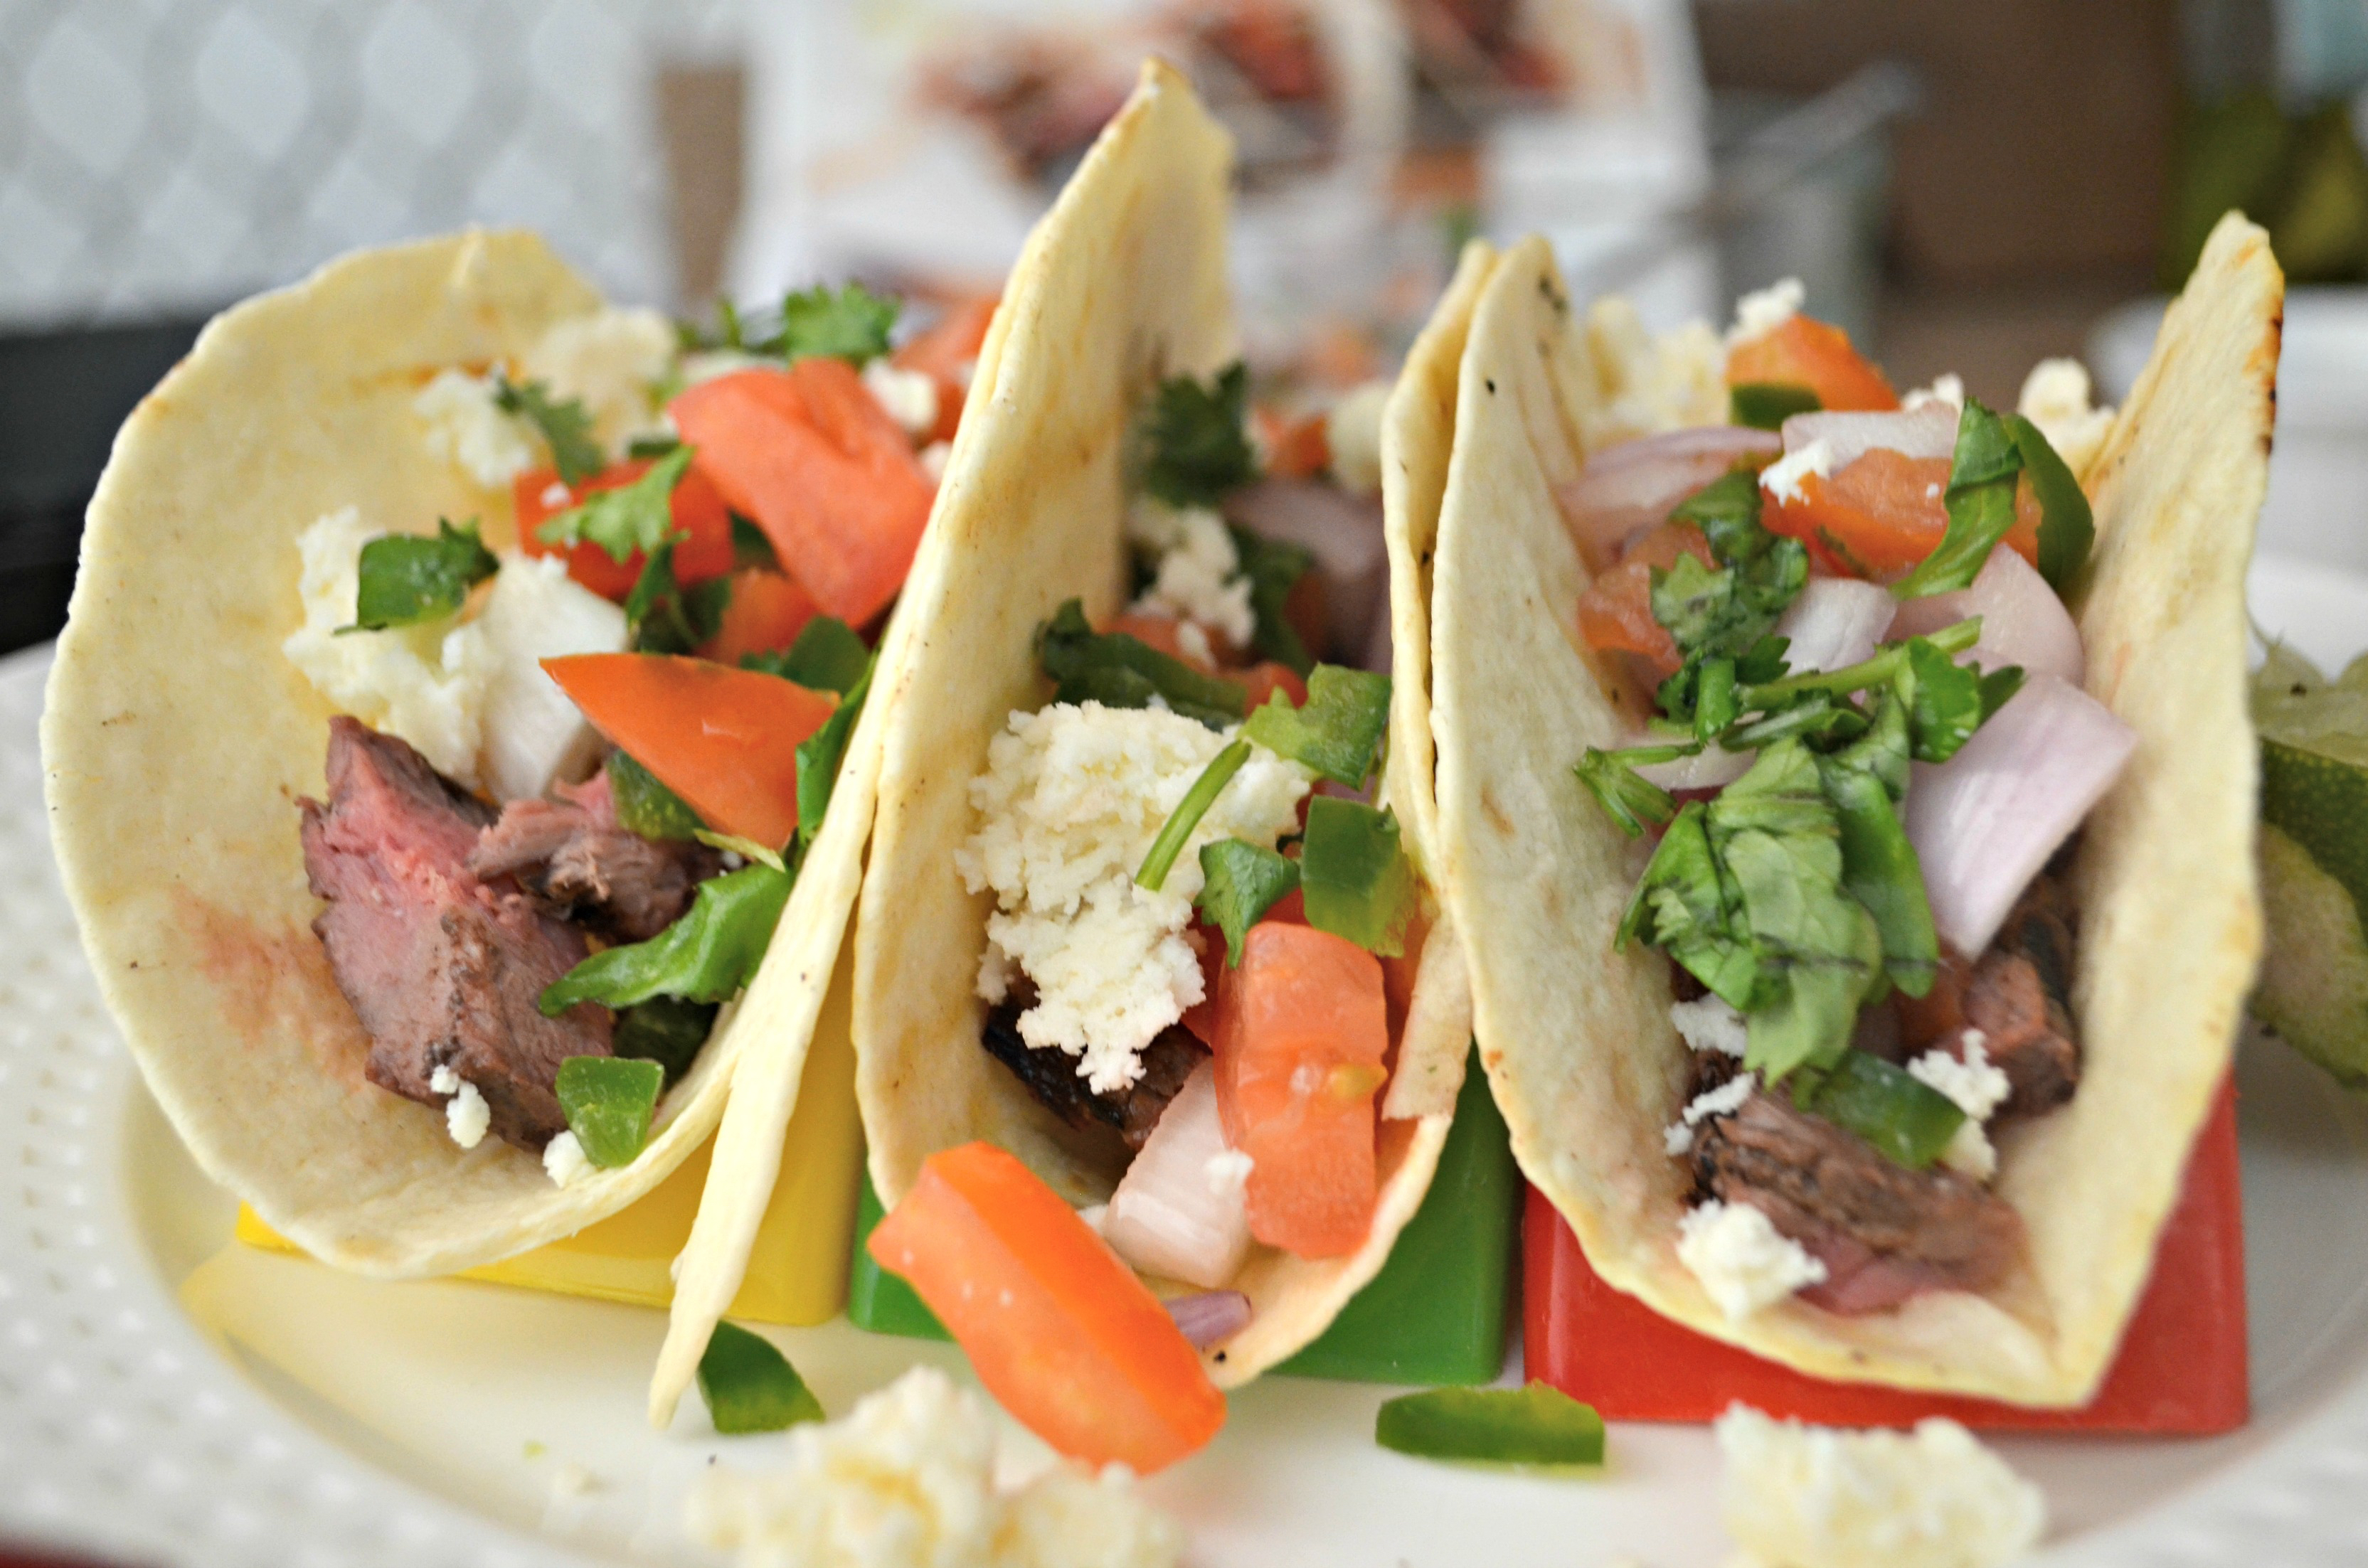 home chef meal deal | street tacos